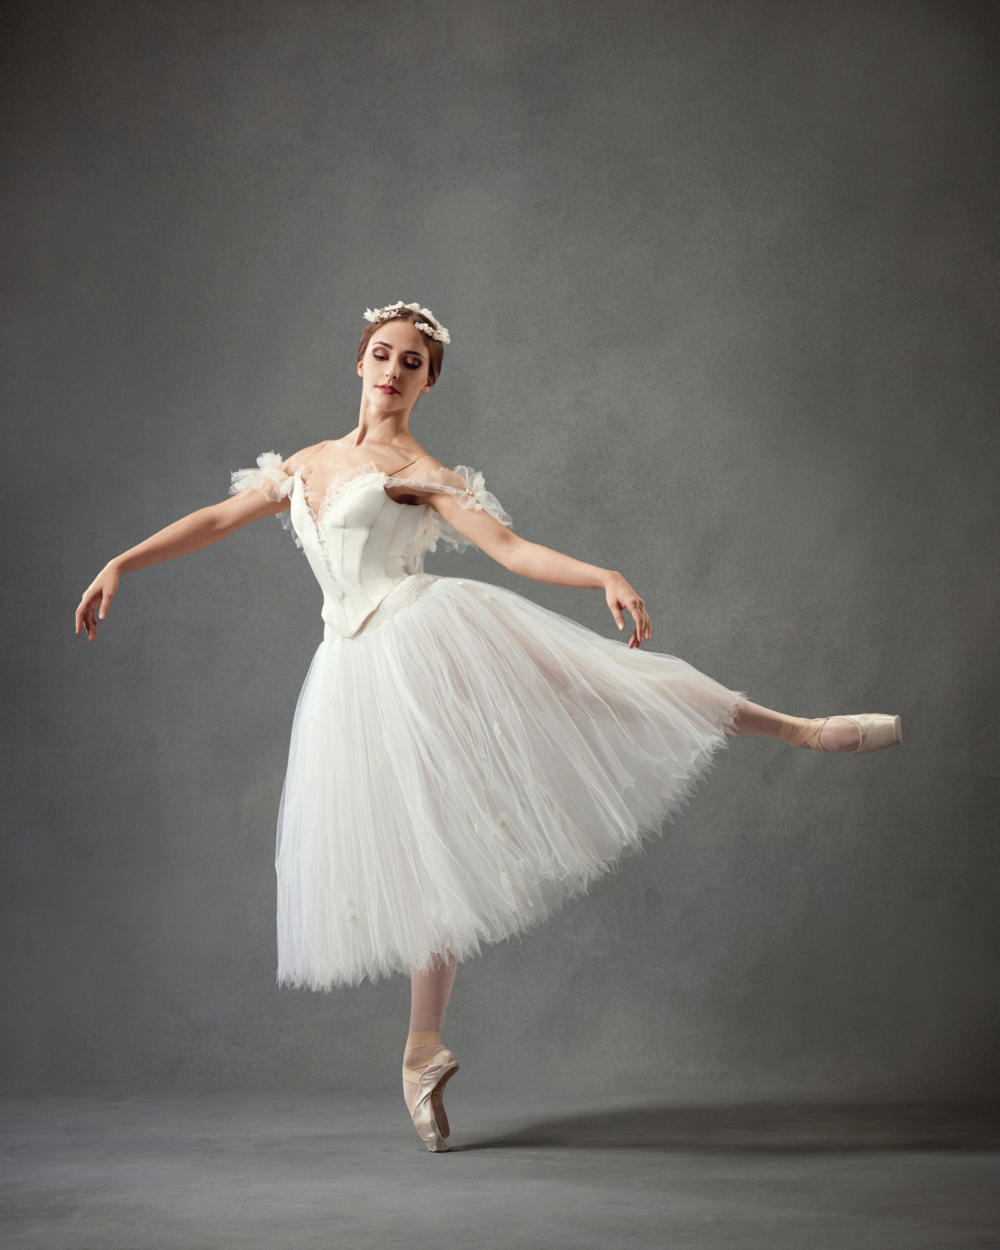 La Sylphide Lead Casting, February 15-23